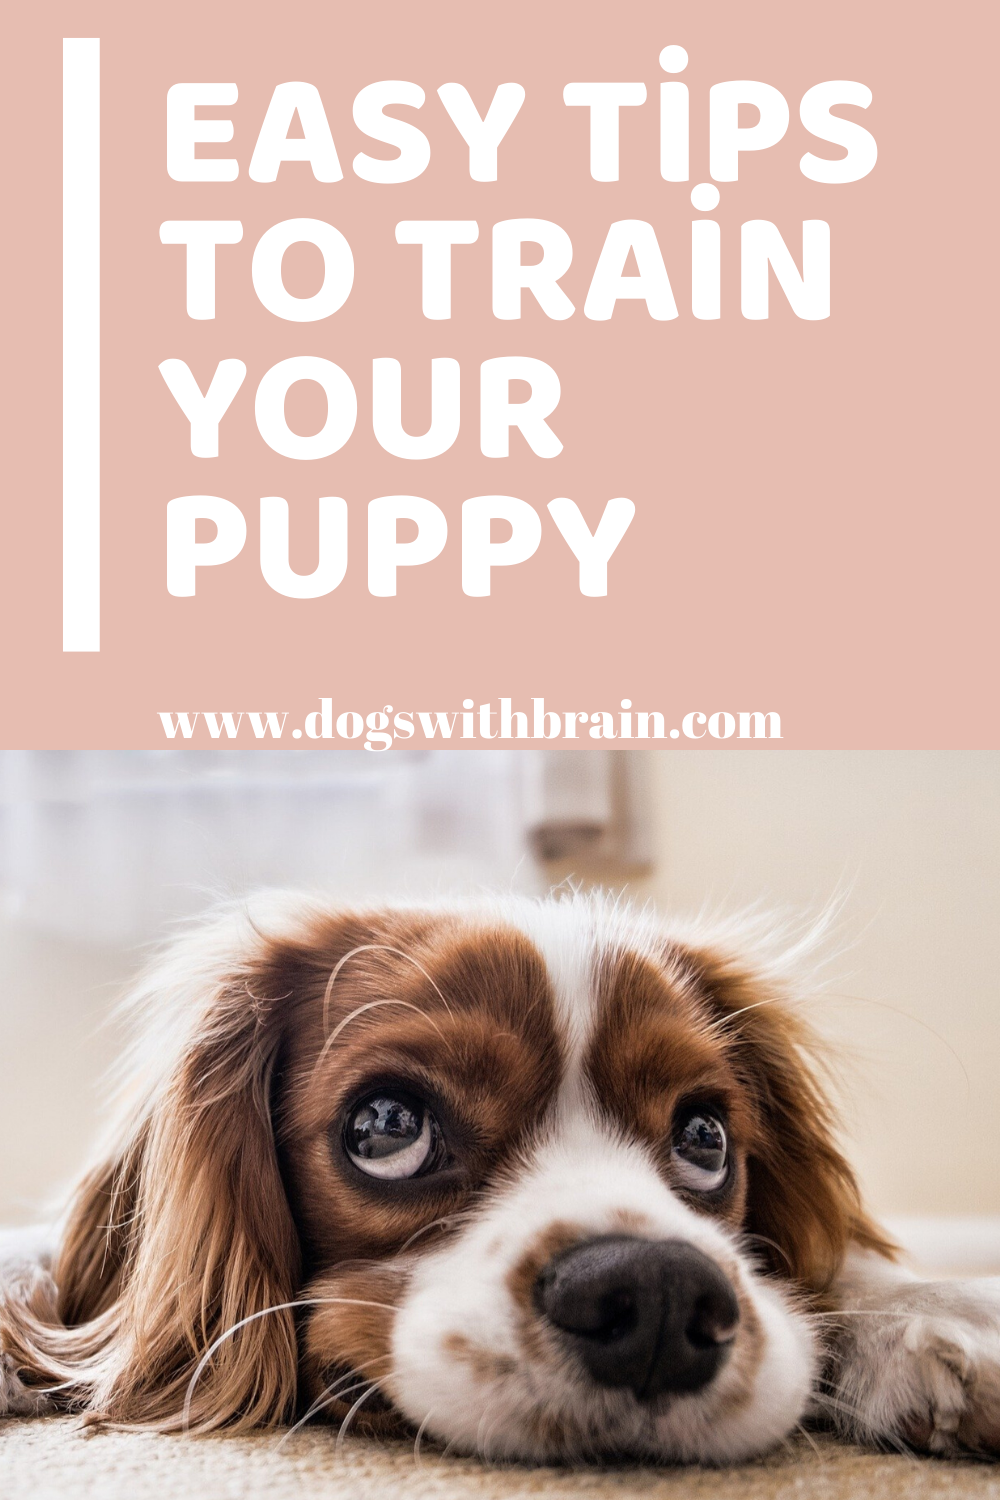 Click Here Get Your Training Dog Training Tips Dog Training Obedience In 2020 Labrador Puppy Training Potty Training Puppy Puppy Training Tips